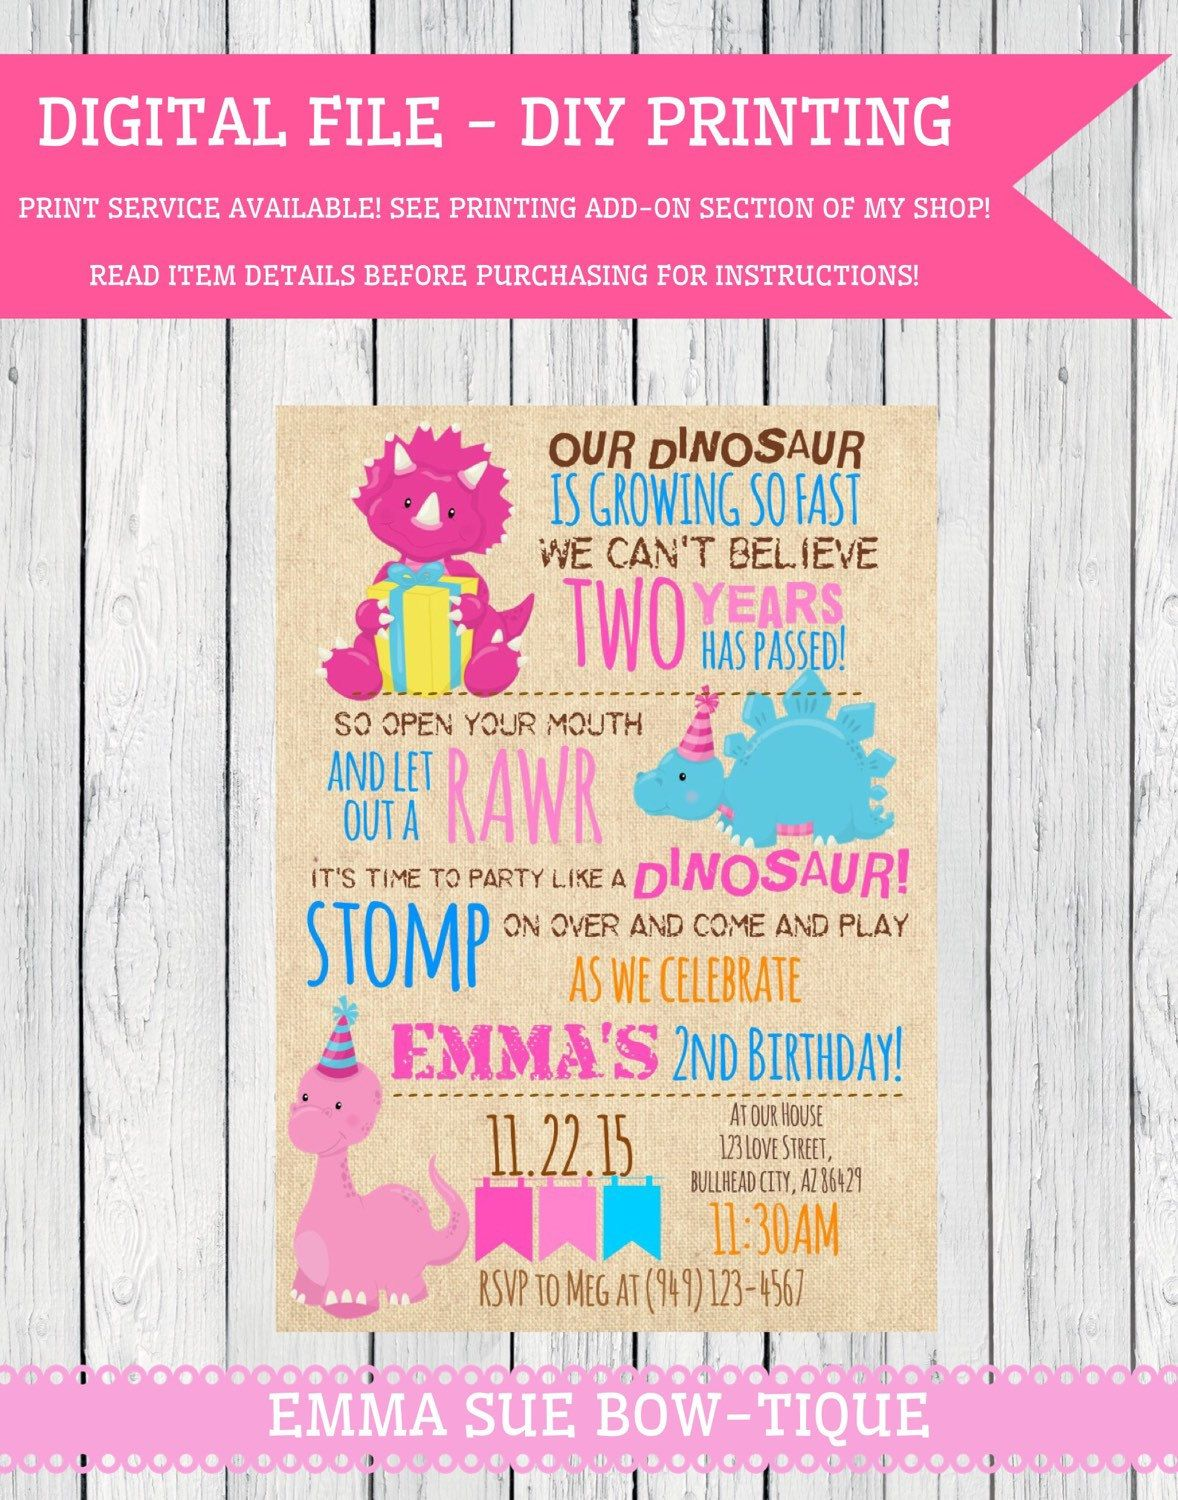 Ritzy A Personal From My Etsy Girls Dinosaur Birthday Dinosaur Personalized Birthday File Dinosaur Birthday Invitation Card Template Dinosaur Birthday Invitations Amazon